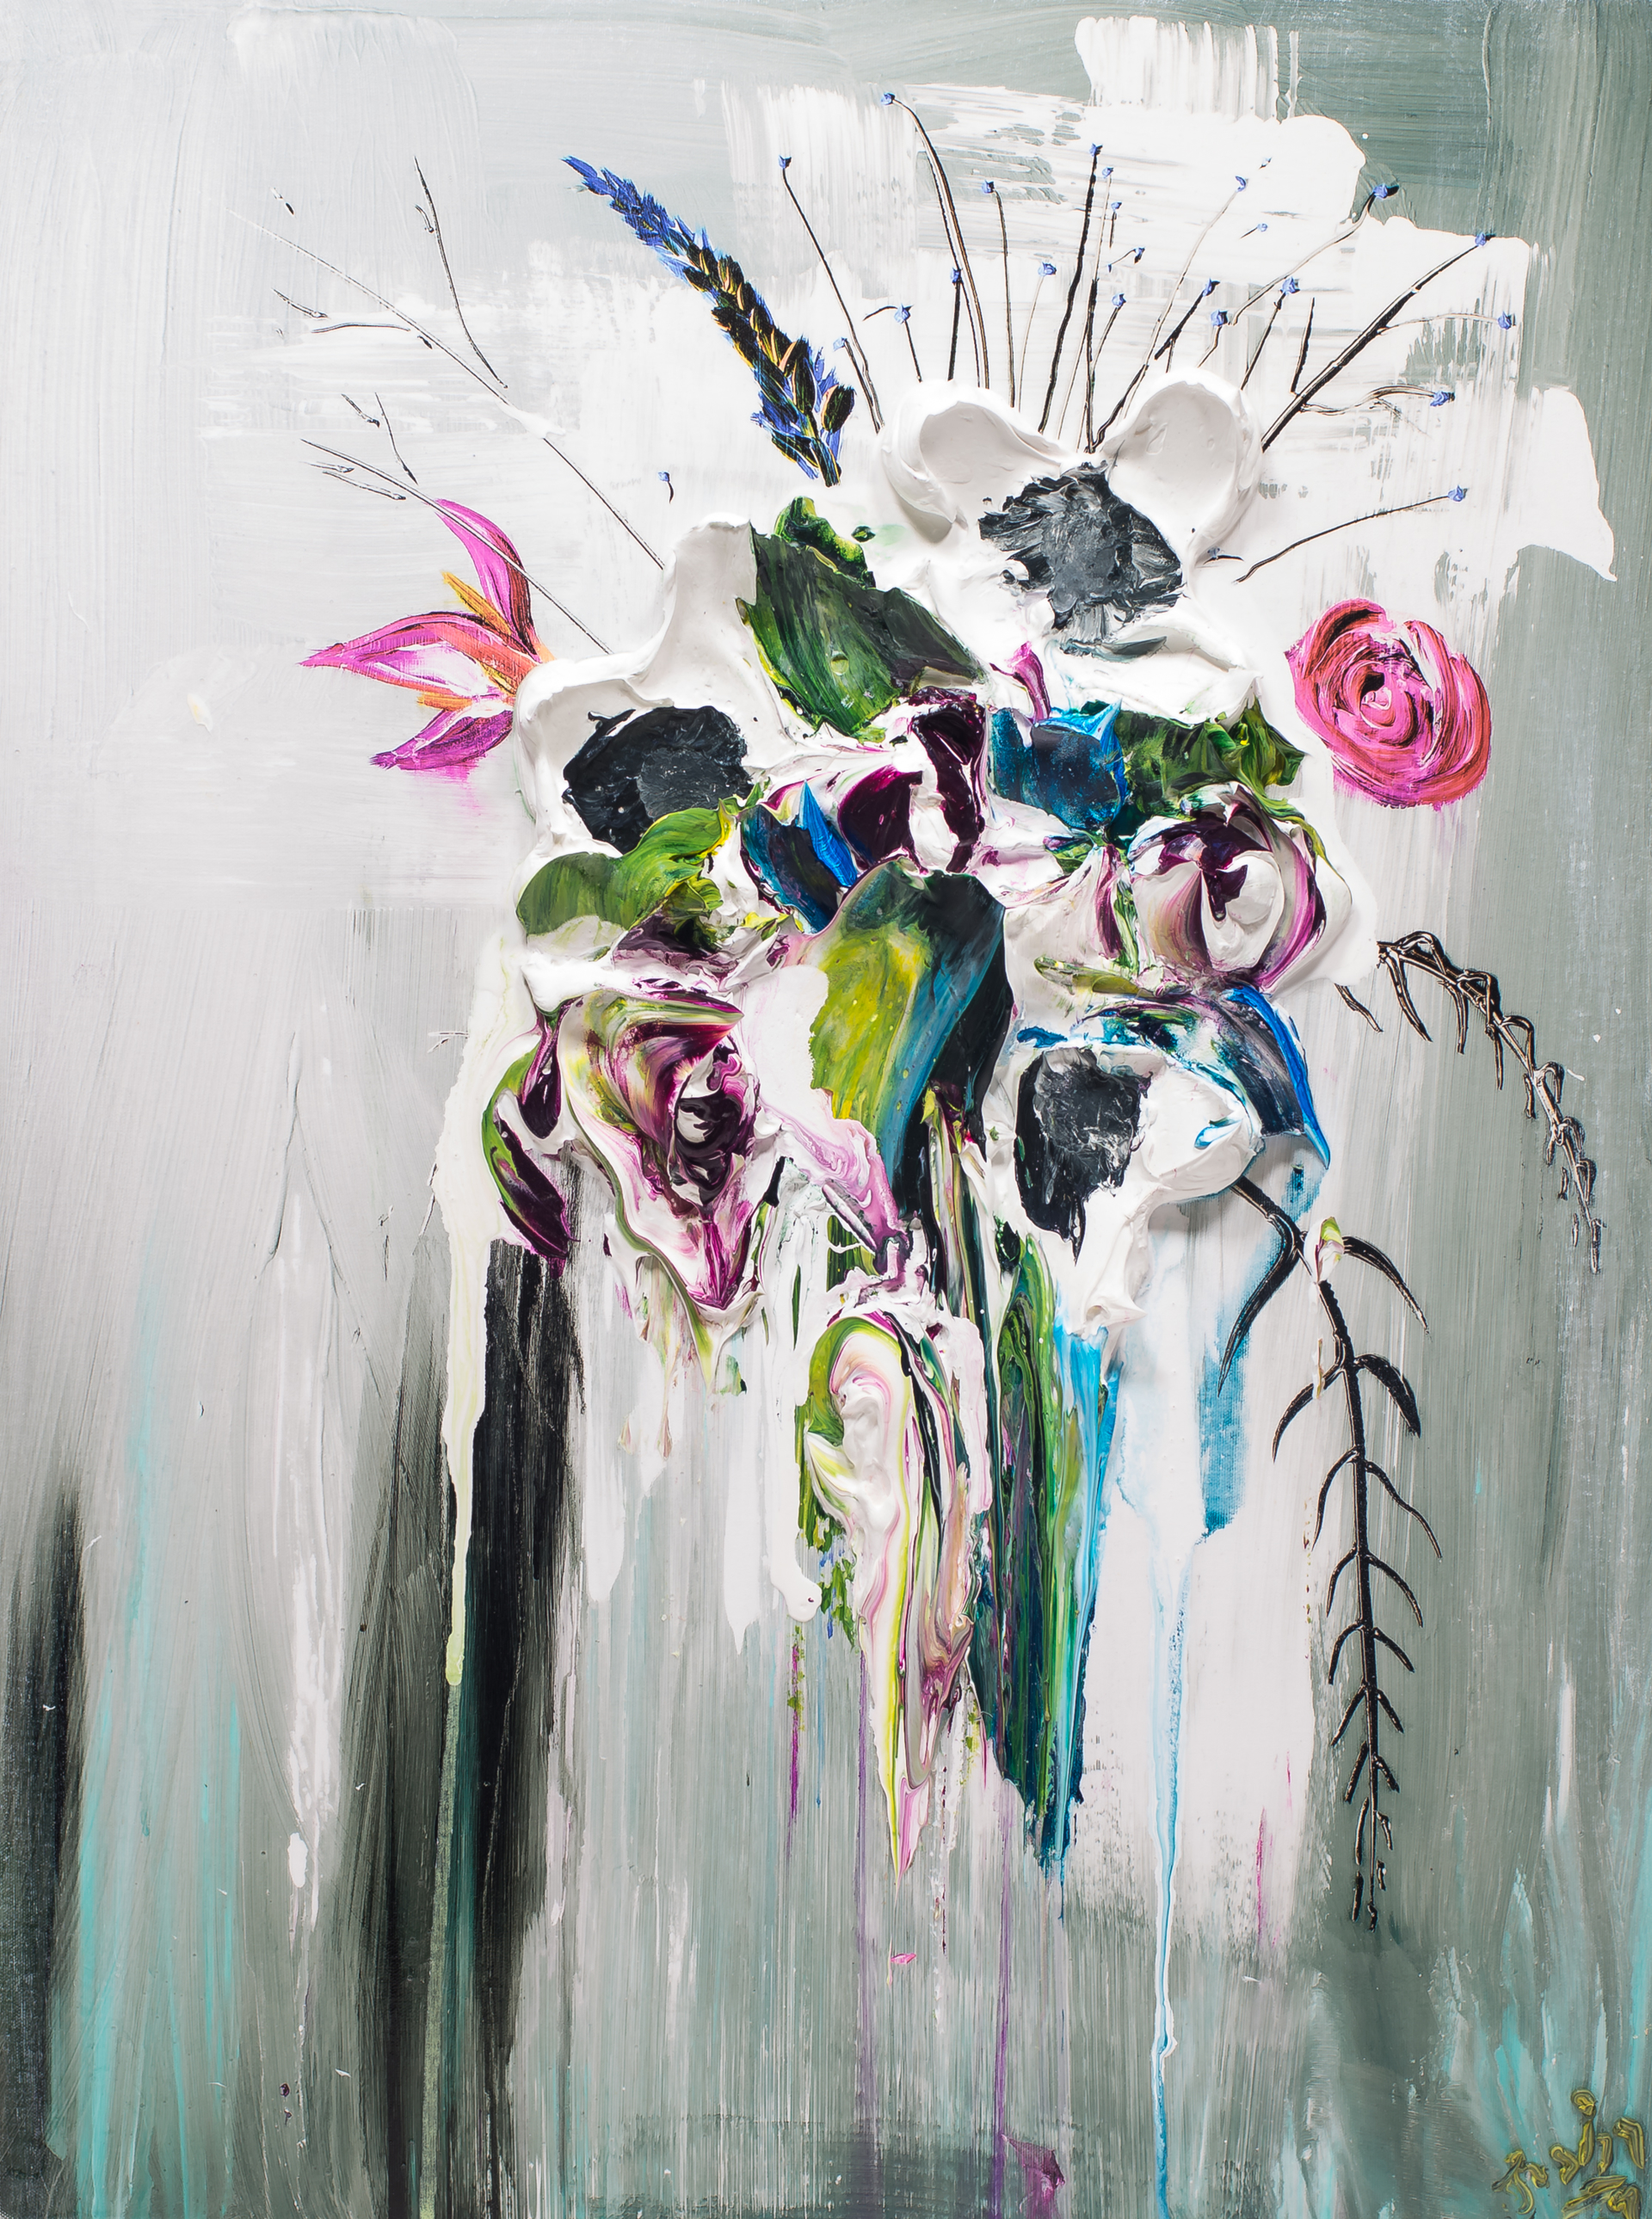 ABSTRACT FLORAL BOUQUET by JUSTIN GAFFREY